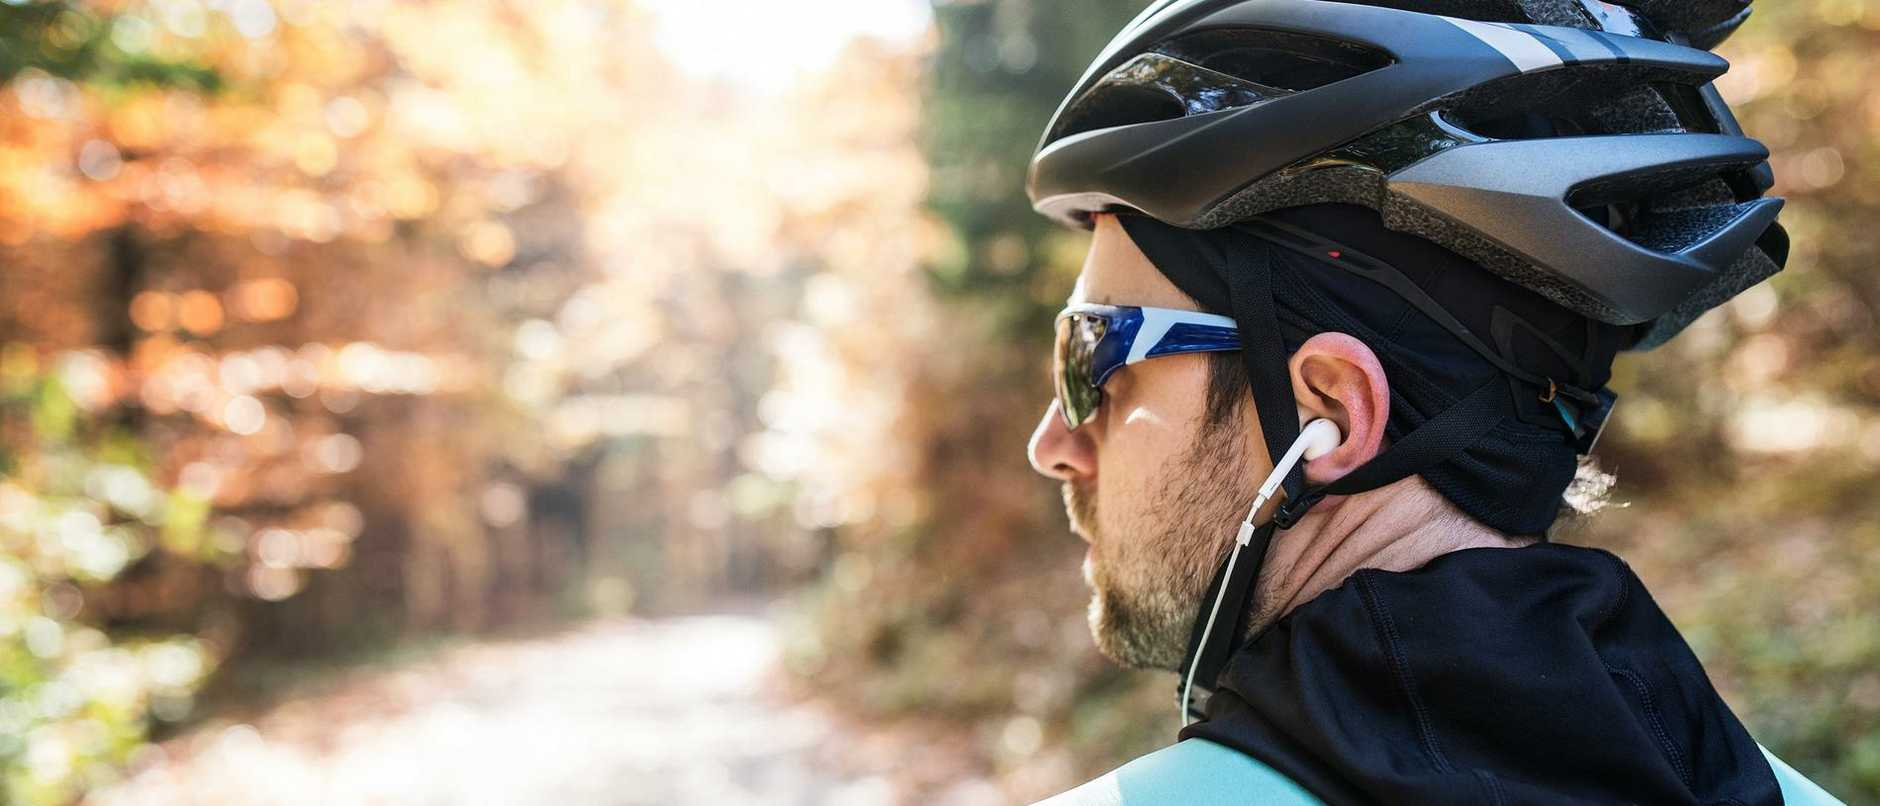 Aussies back new ban on cyclists using headphones